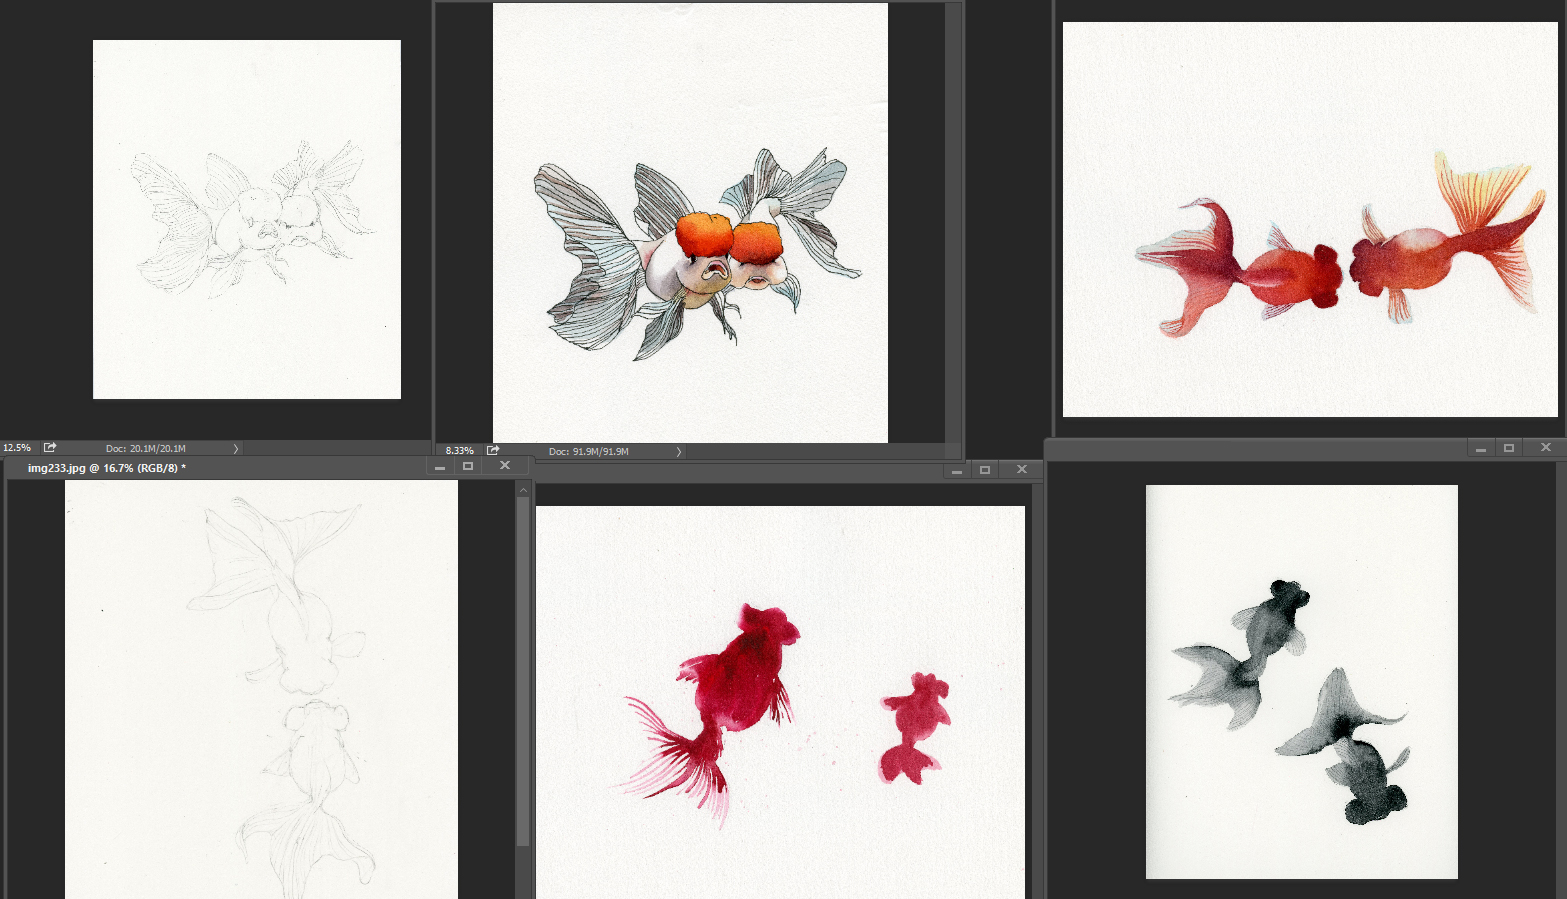 Preliminary sketches and test render of goldfishes.